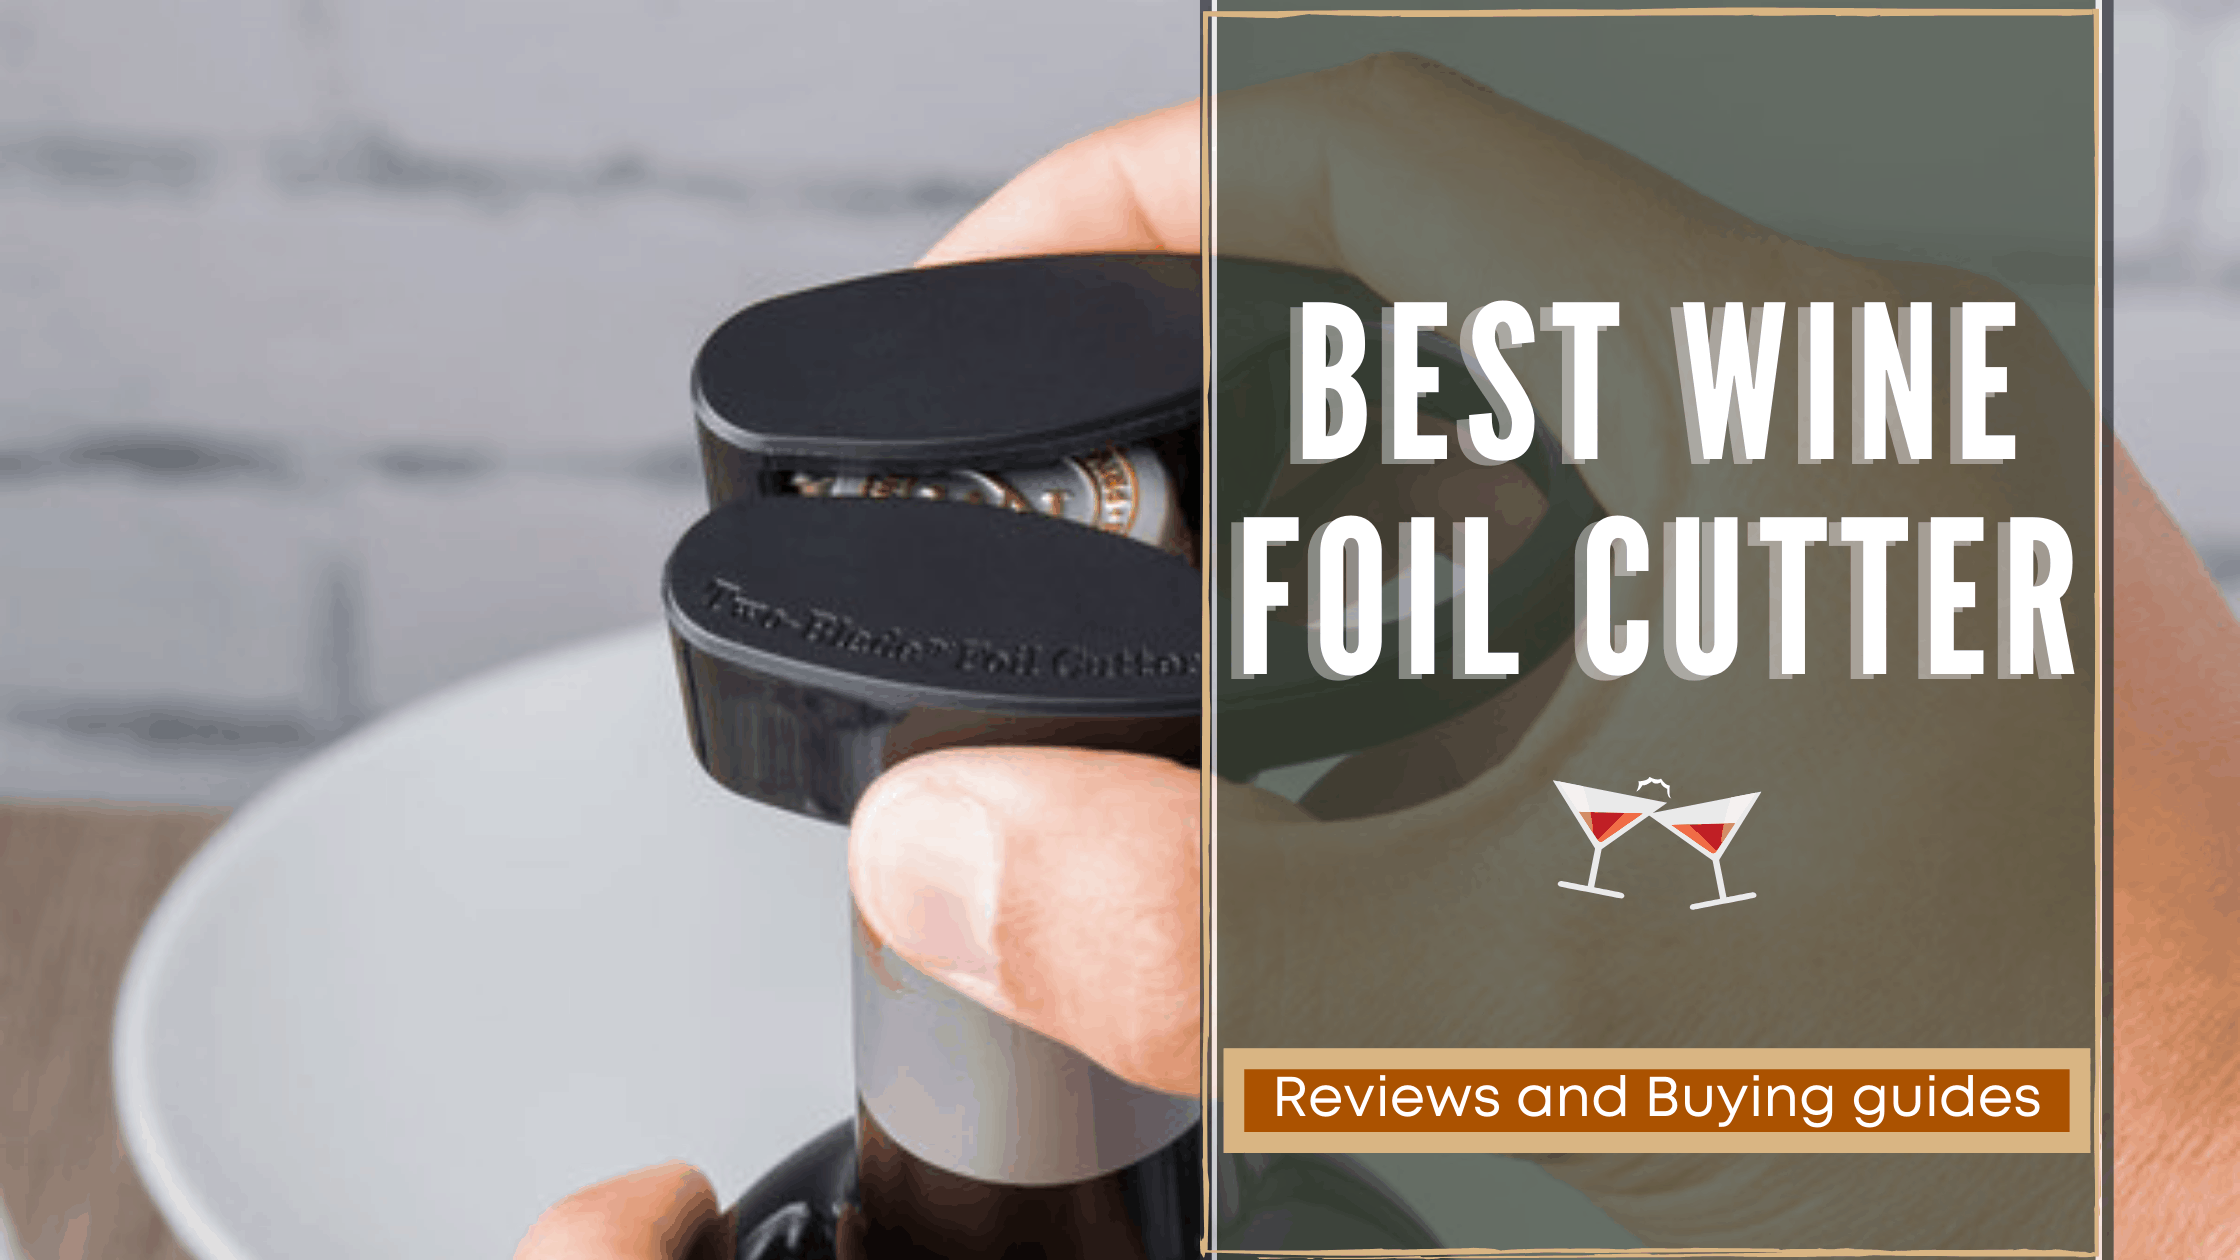 Best Wine Foil Cutter